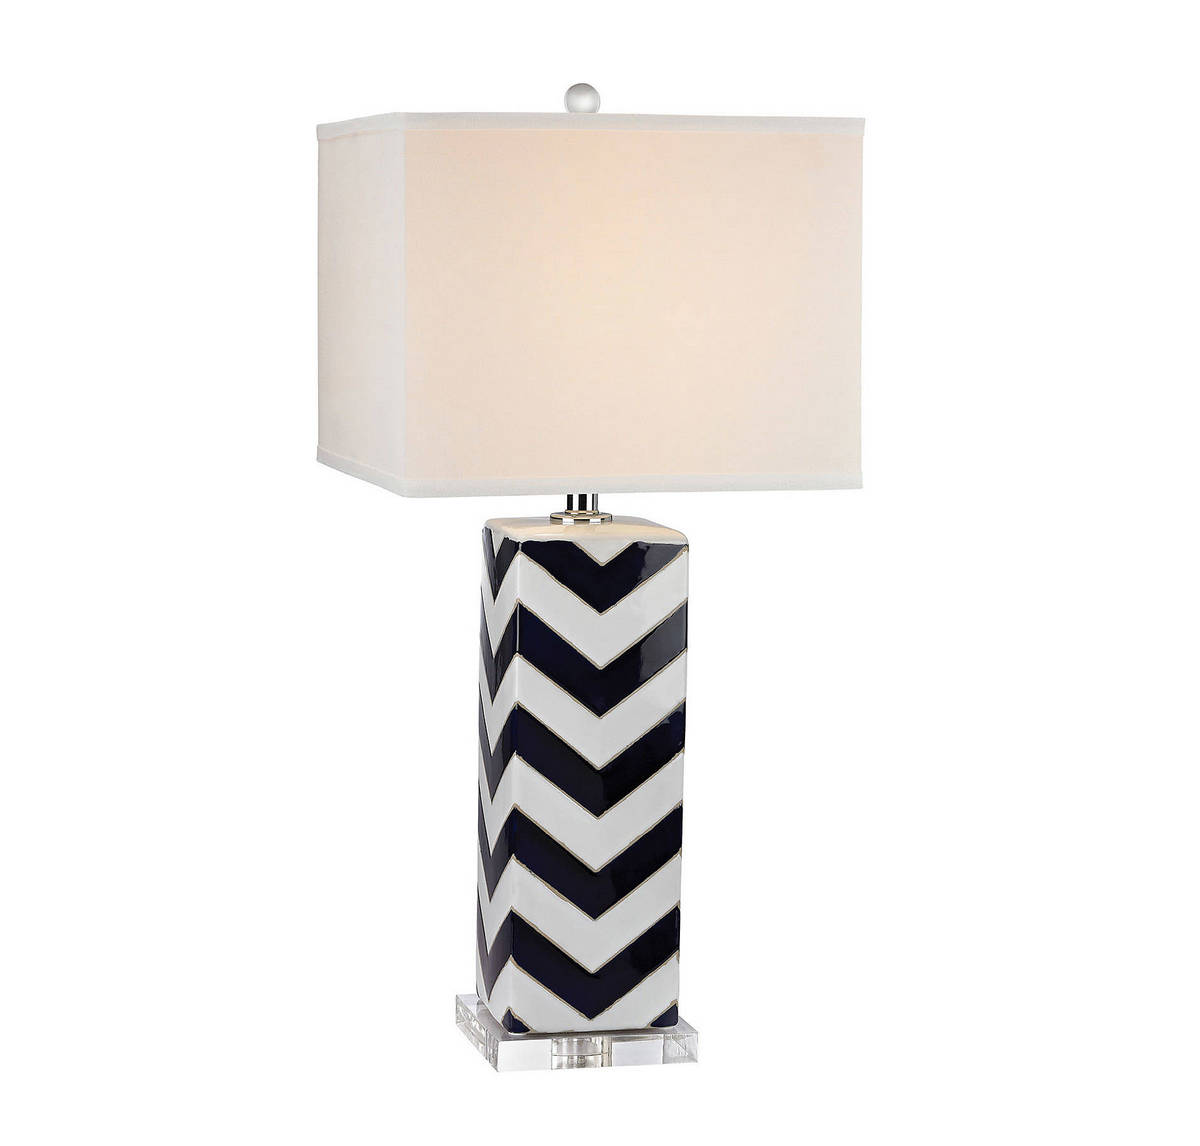 Dimond Chevron 31 Table Lamp in Navy and White